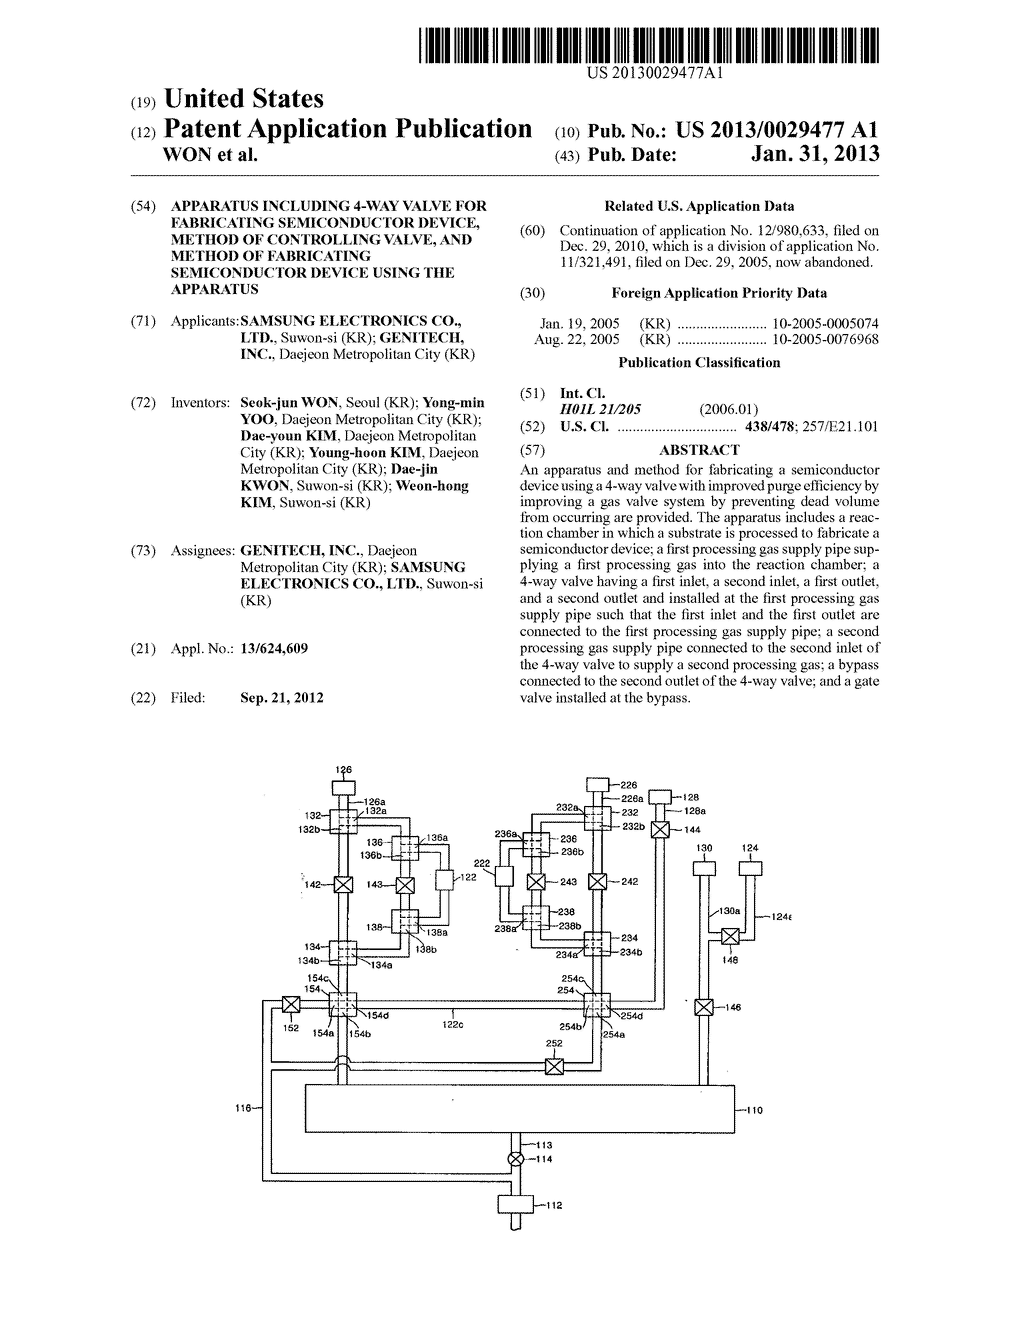 APPARATUS INCLUDING 4-WAY VALVE FOR FABRICATING SEMICONDUCTOR DEVICE,     METHOD OF CONTROLLING VALVE, AND METHOD OF FABRICATING SEMICONDUCTOR     DEVICE USING THE APPARATUS - diagram, schematic, and image 01